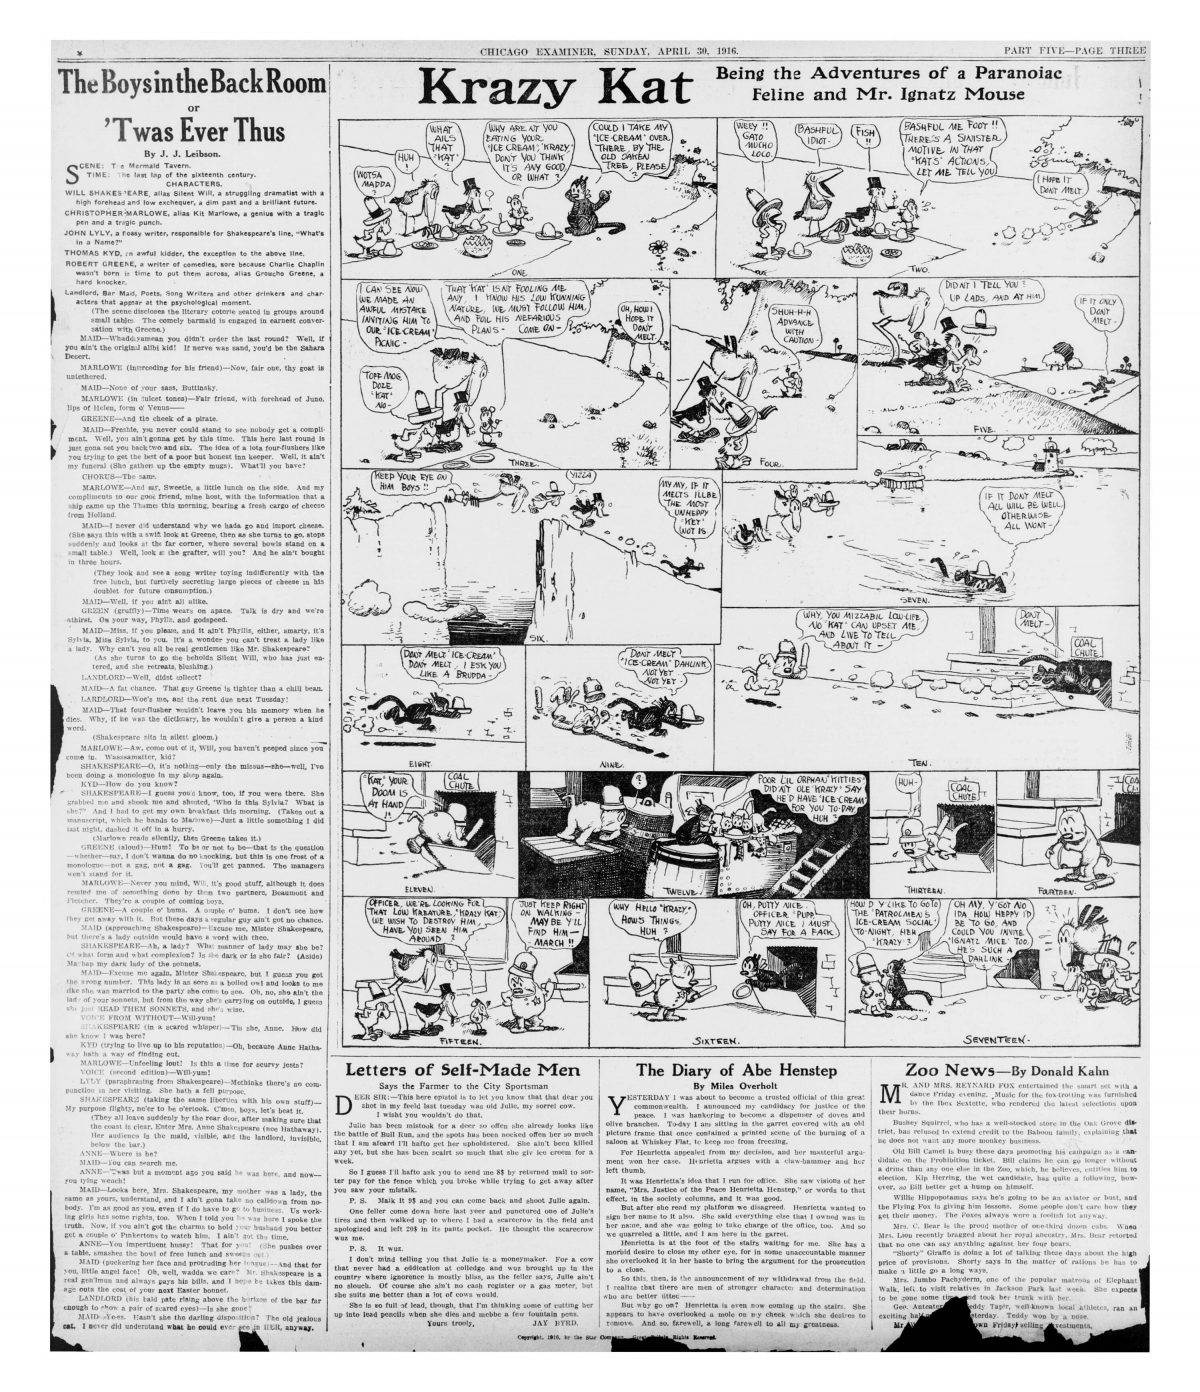 Krazy Kat - |Chicago Examiner April 30 1916